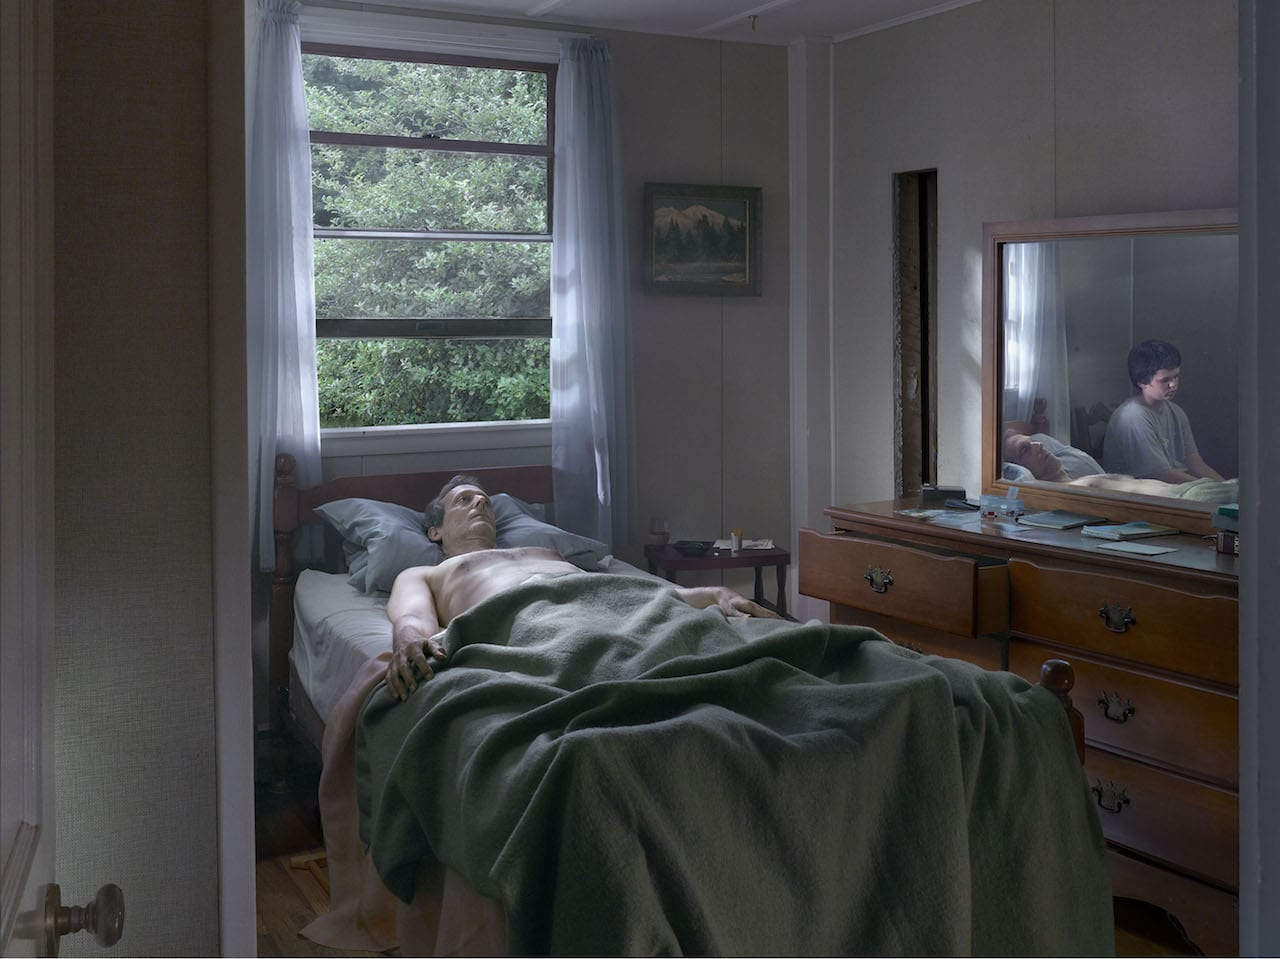 thesis show gregory crewdson Press for gregory crewdson at gagosian gregory crewdson was born in 1962 in brooklyn, new york he is a graduate of suny purchase and the yale school of art, where he is now director of graduate studies in photography.